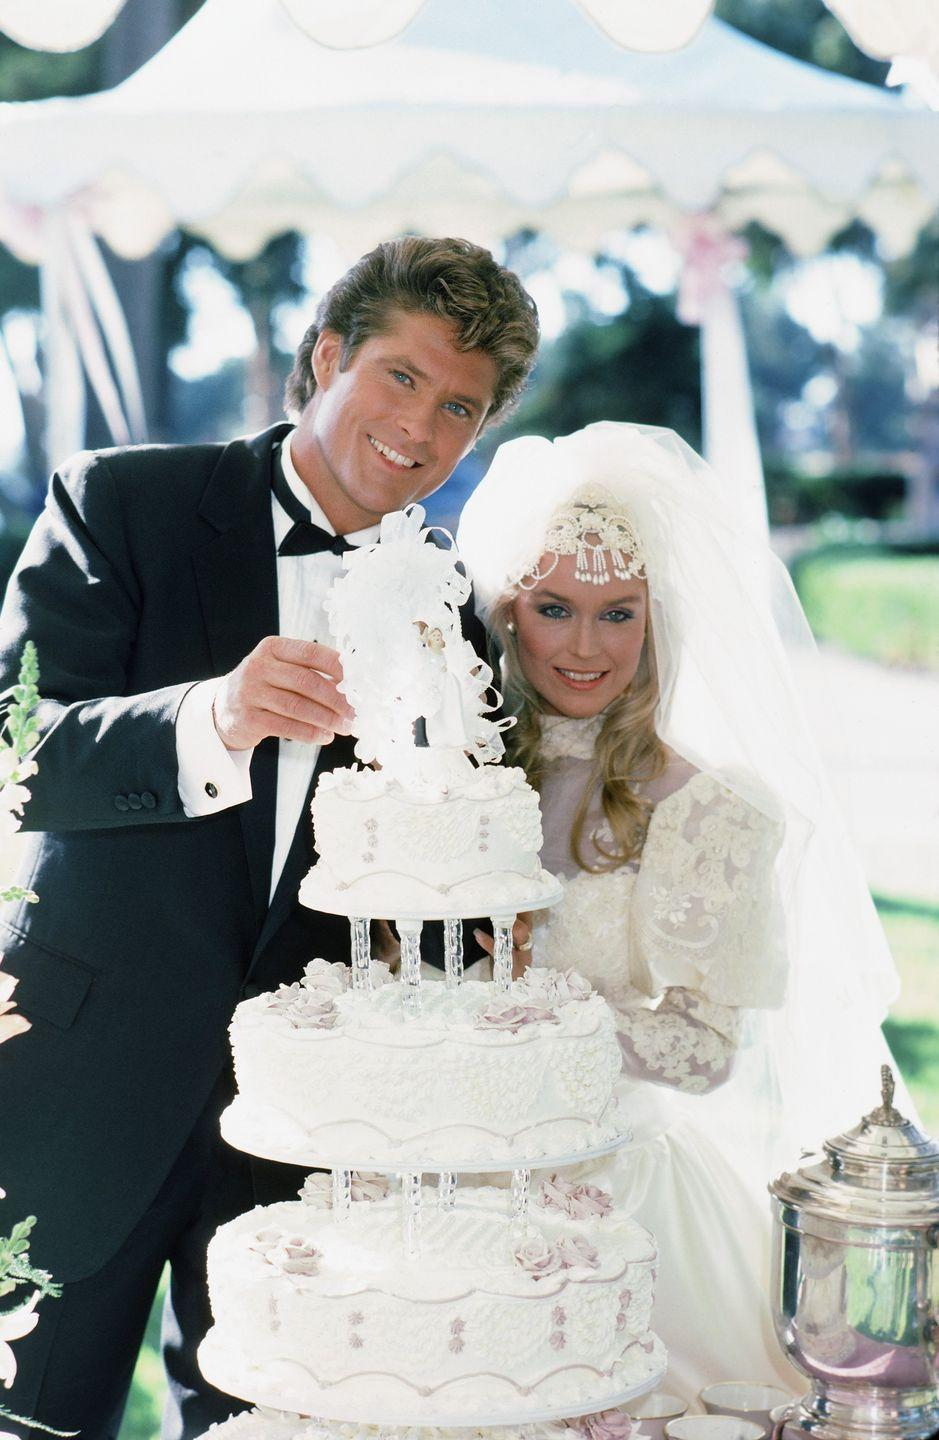 <p>Stevie Mason wore an elegant '80s wedding dress when she married her long-time love, Michael Knight (a.k.a. David Hasselhoff!) on <em>Knight Rider </em>in 1985. The lace and taffeta princess gown featured puffy sleeves and an illusion neckline, which she paired with an over-the-top beaded headpiece. </p>